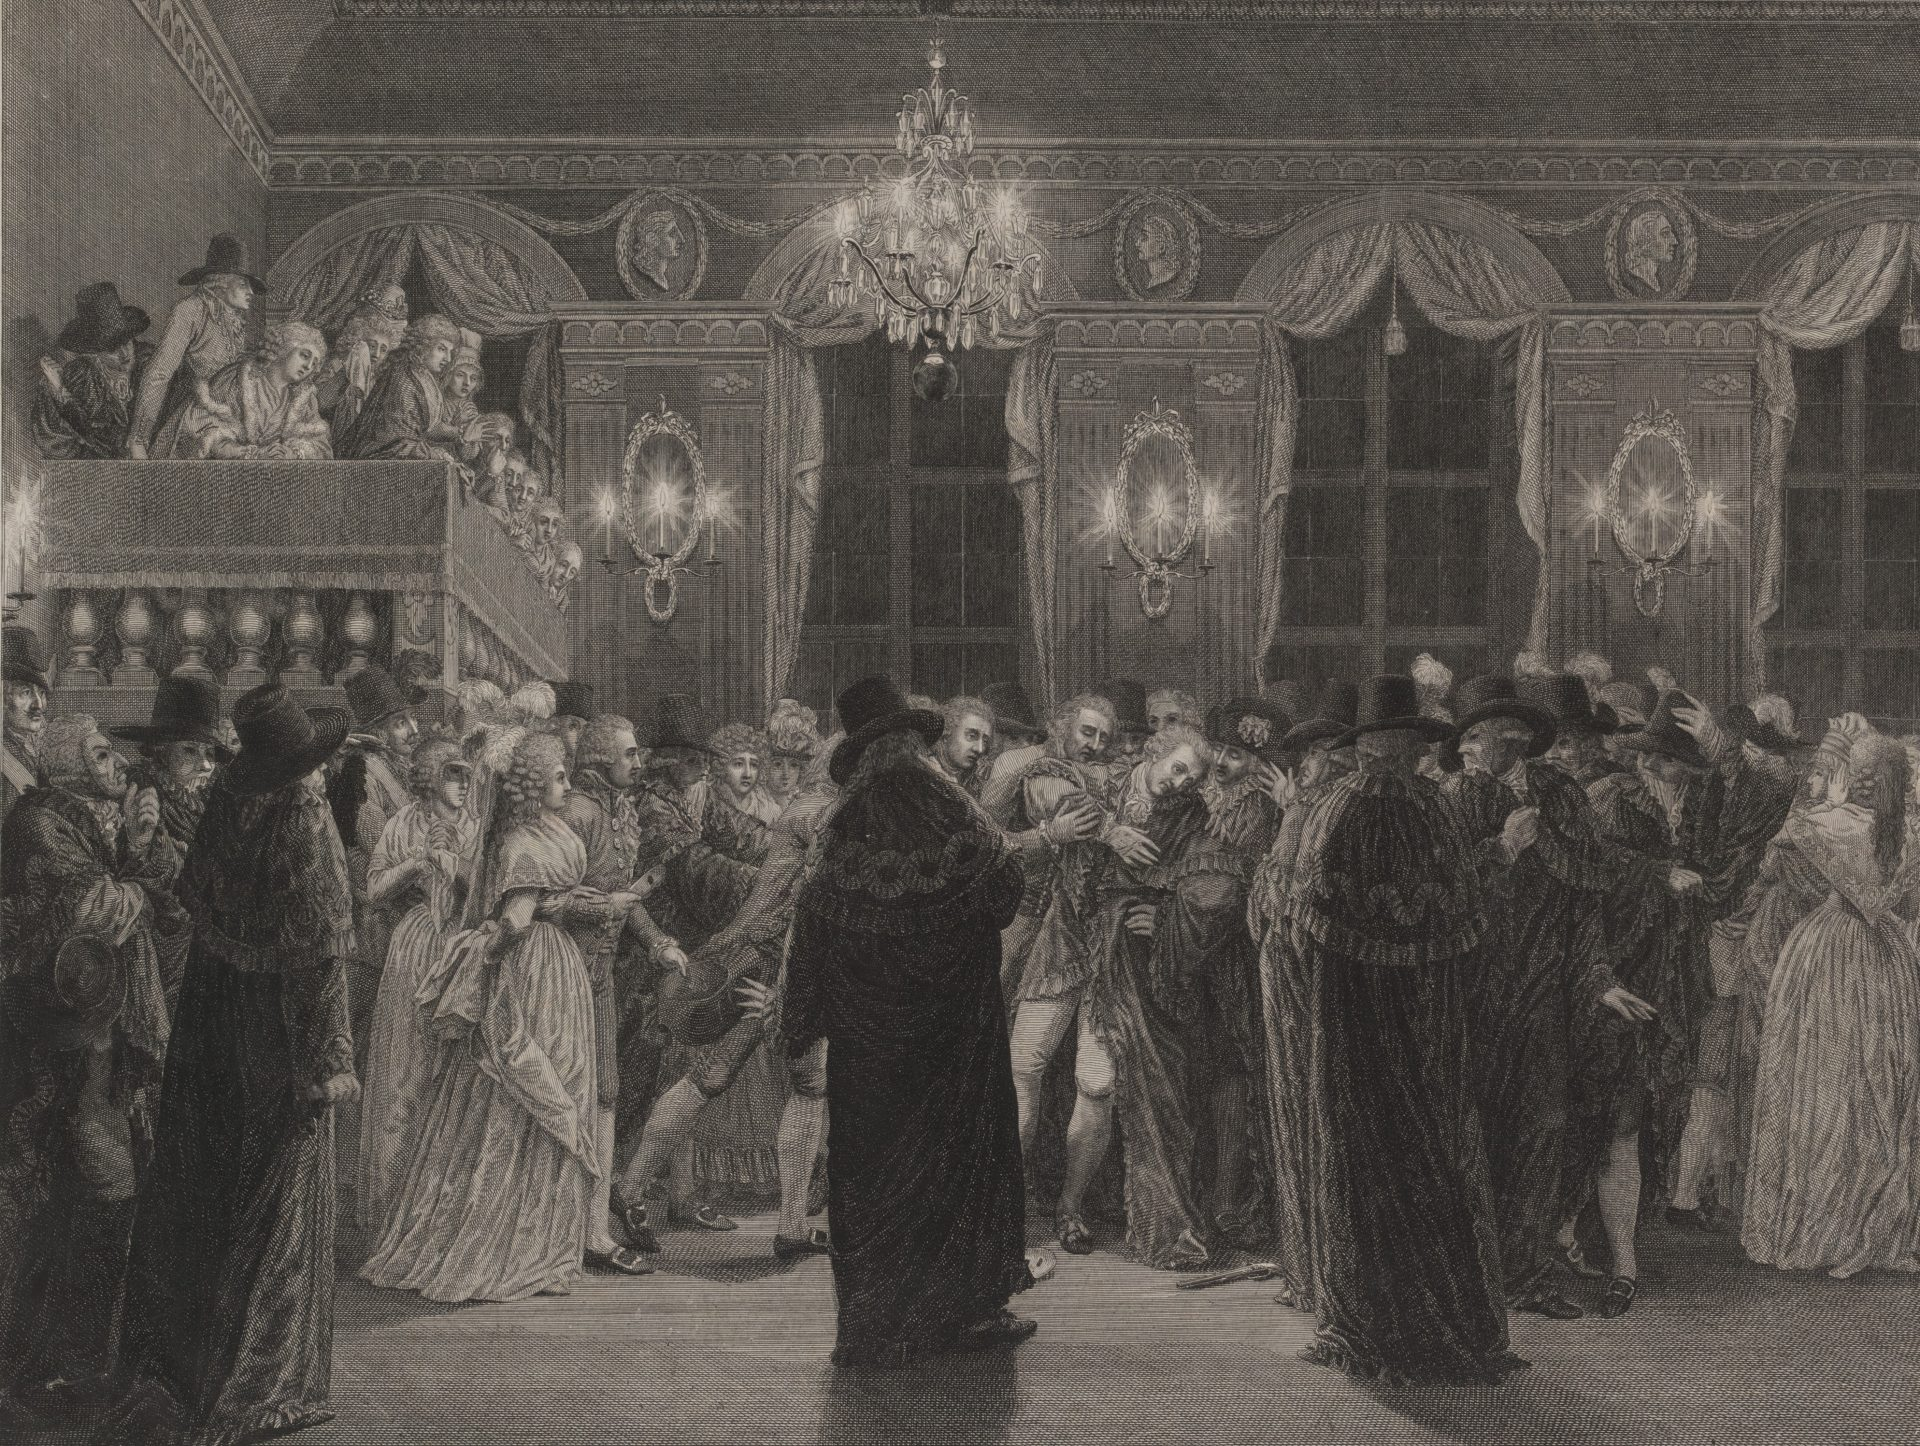 Illustration of the opera ball. A large room with several people. In the middle the king is shot.